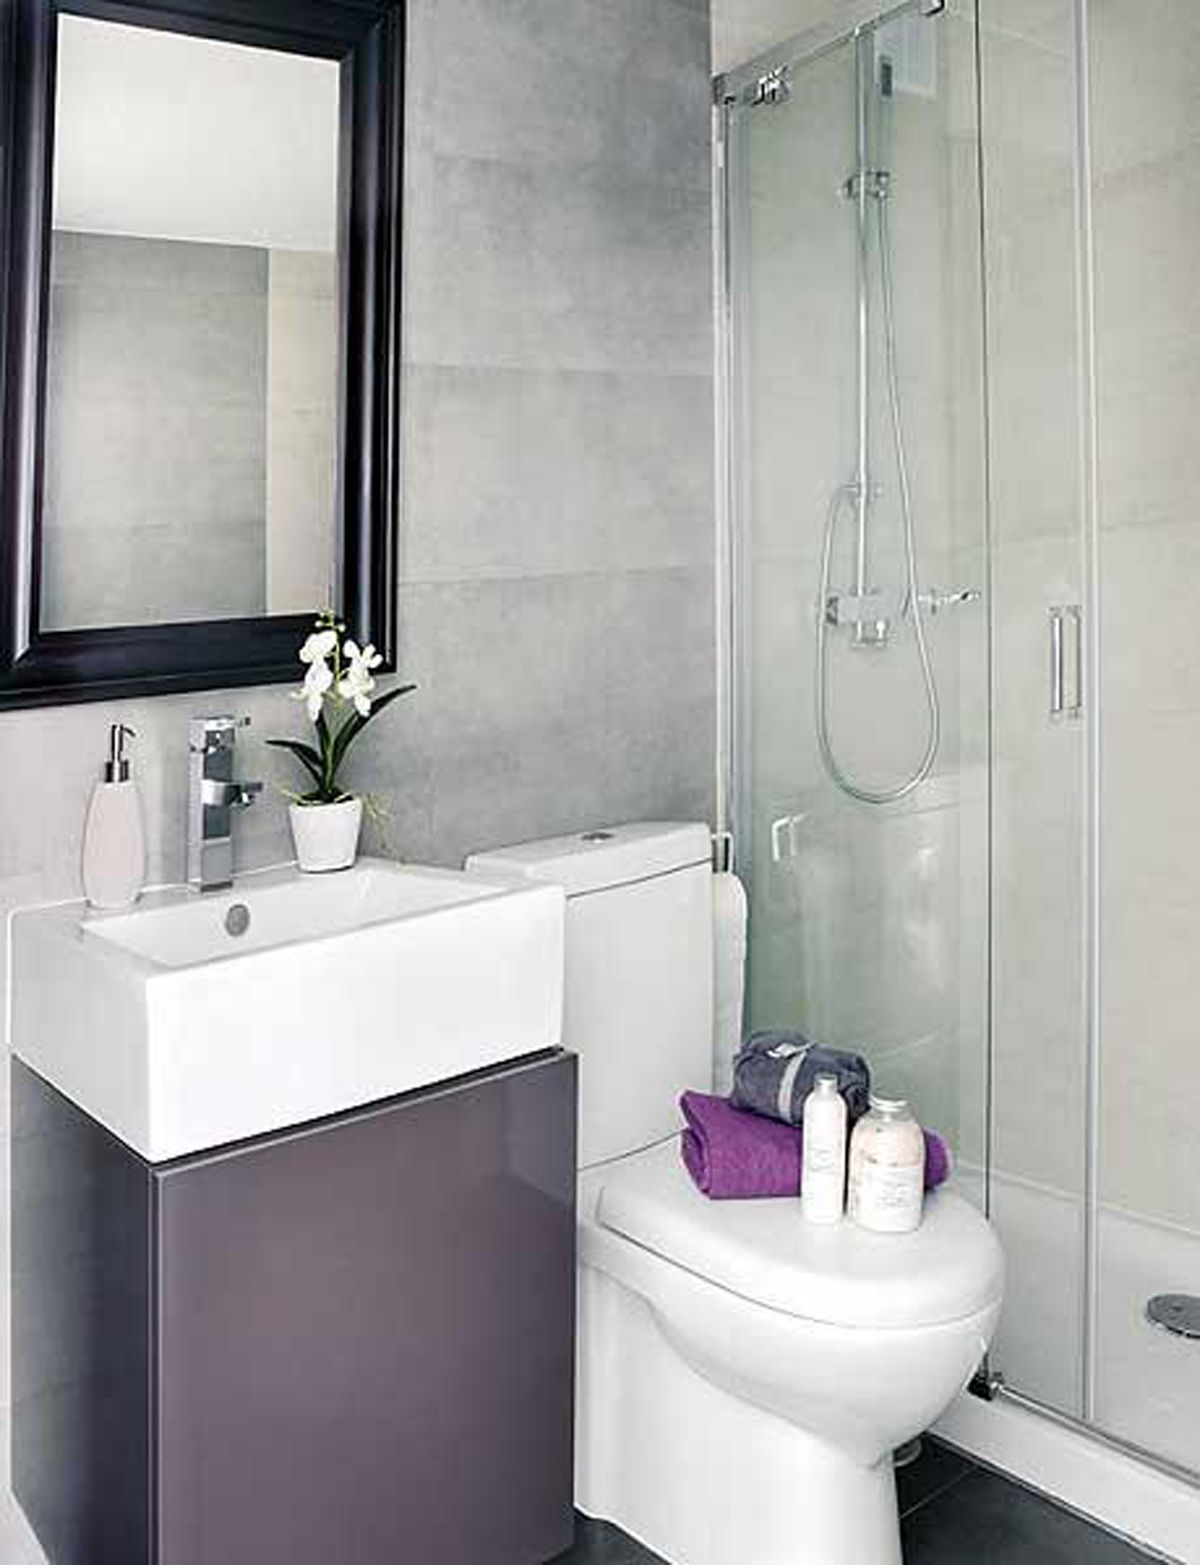 Small Bathroom Design intrinsic interior design applied in small apartment architecture